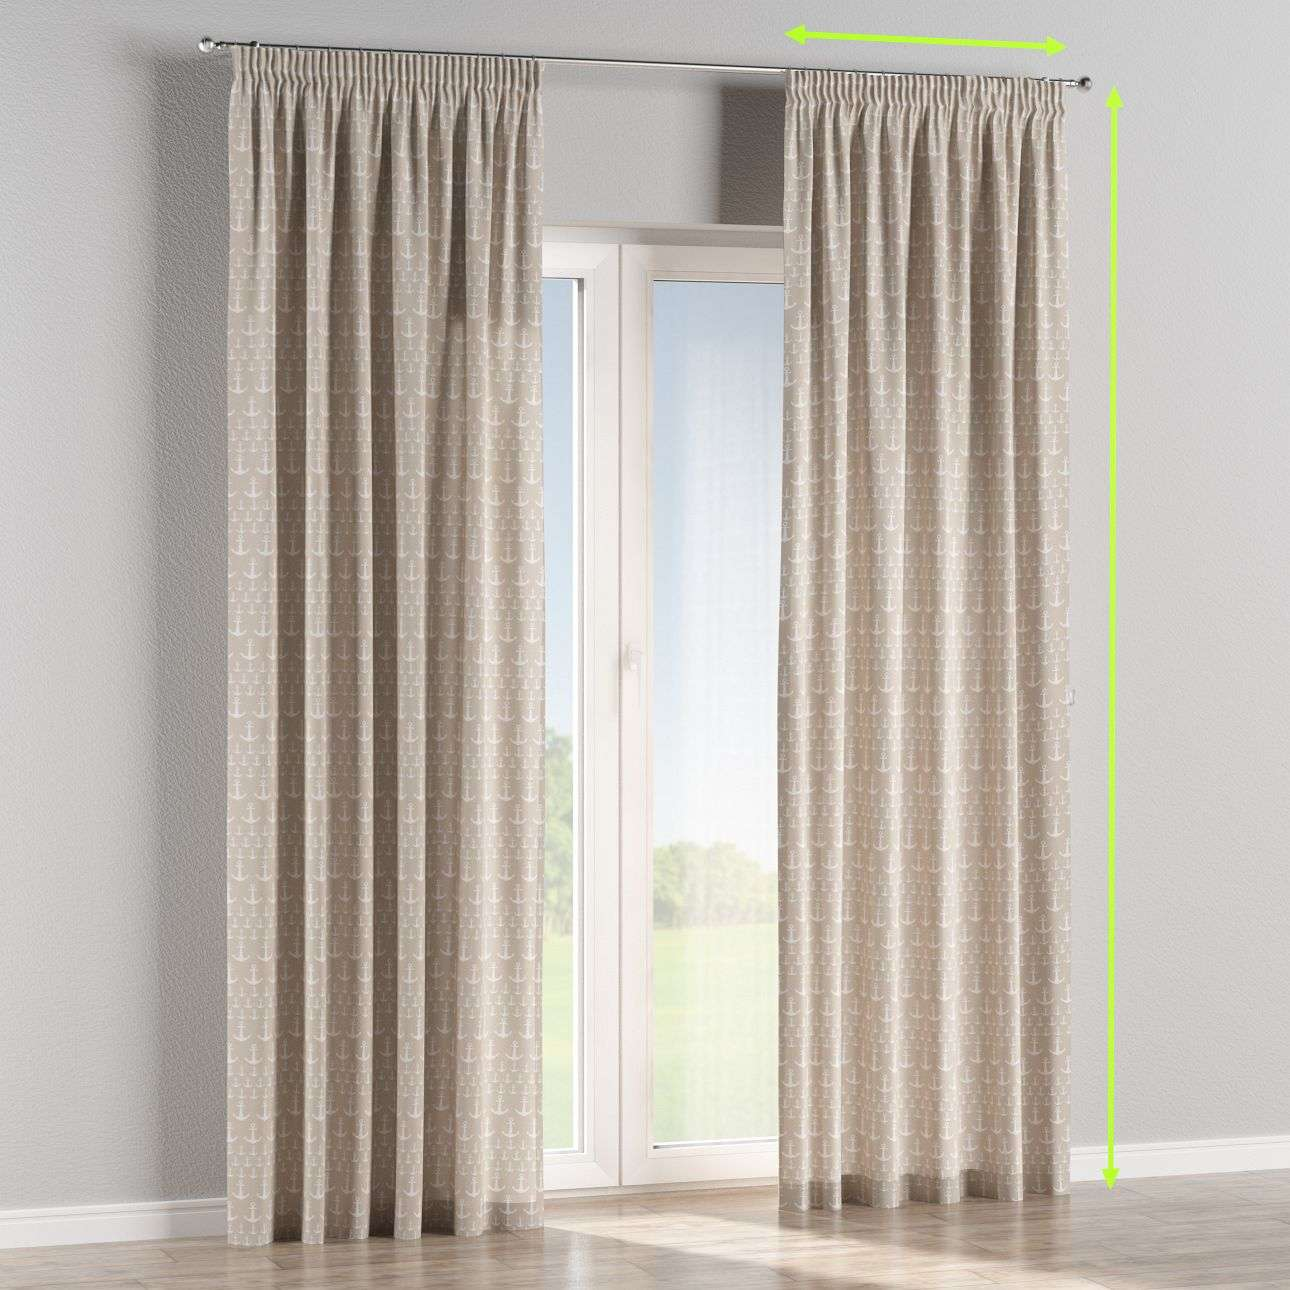 Pencil pleat curtains in collection Marina, fabric: 140-63